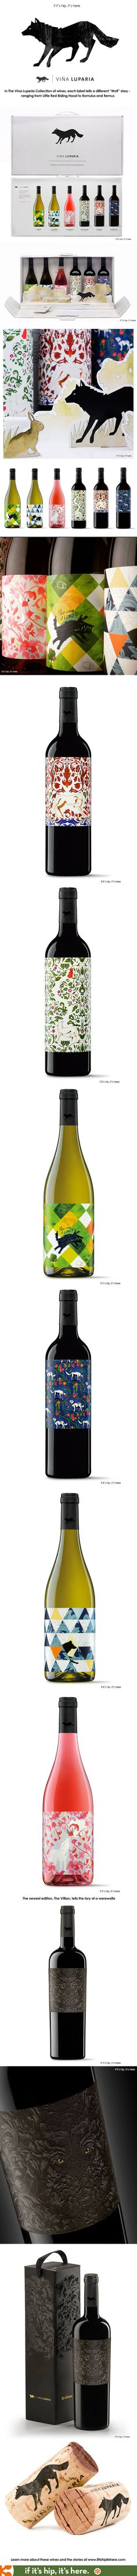 Vi�a Luparia Wines Are Beautifully Branded And Labeled Each Tells A Story  That Revolves Around